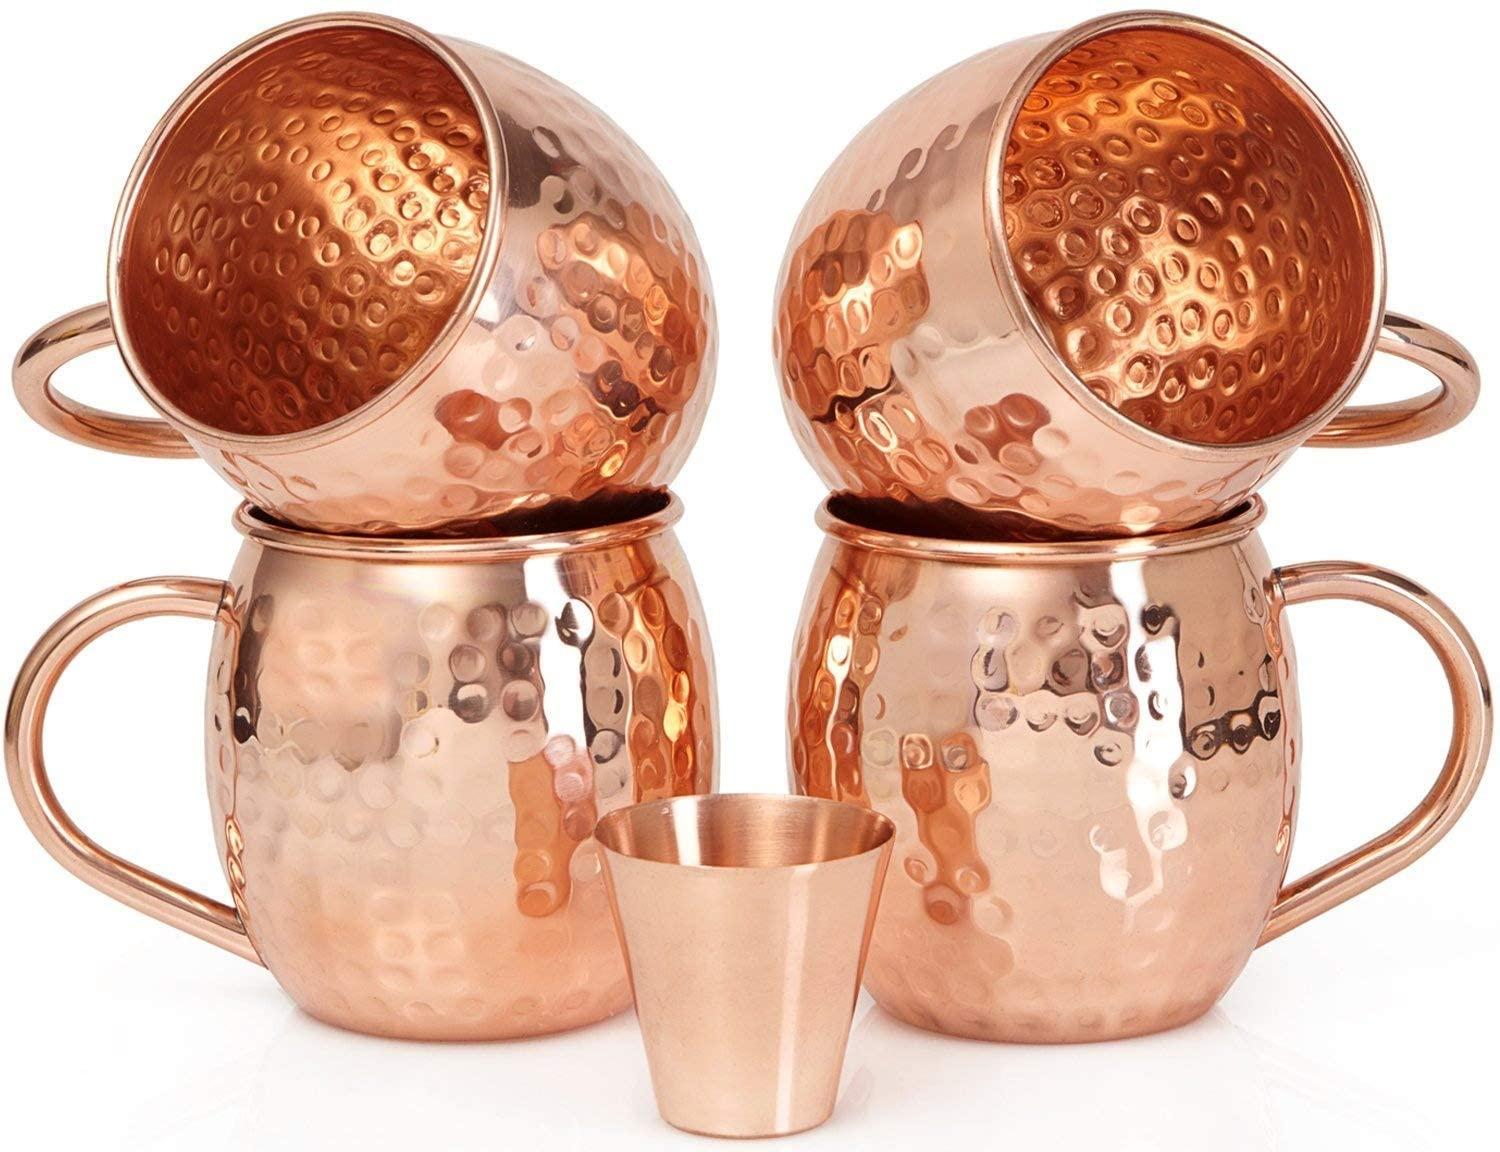 Set of 4 Moscow Mule Copper Mugs with Copper Shot Glass - 4 16oz Copper Moscow Mule Mugs - Solid Copper Hammered Mug - Copper Cups for Moscow Mules